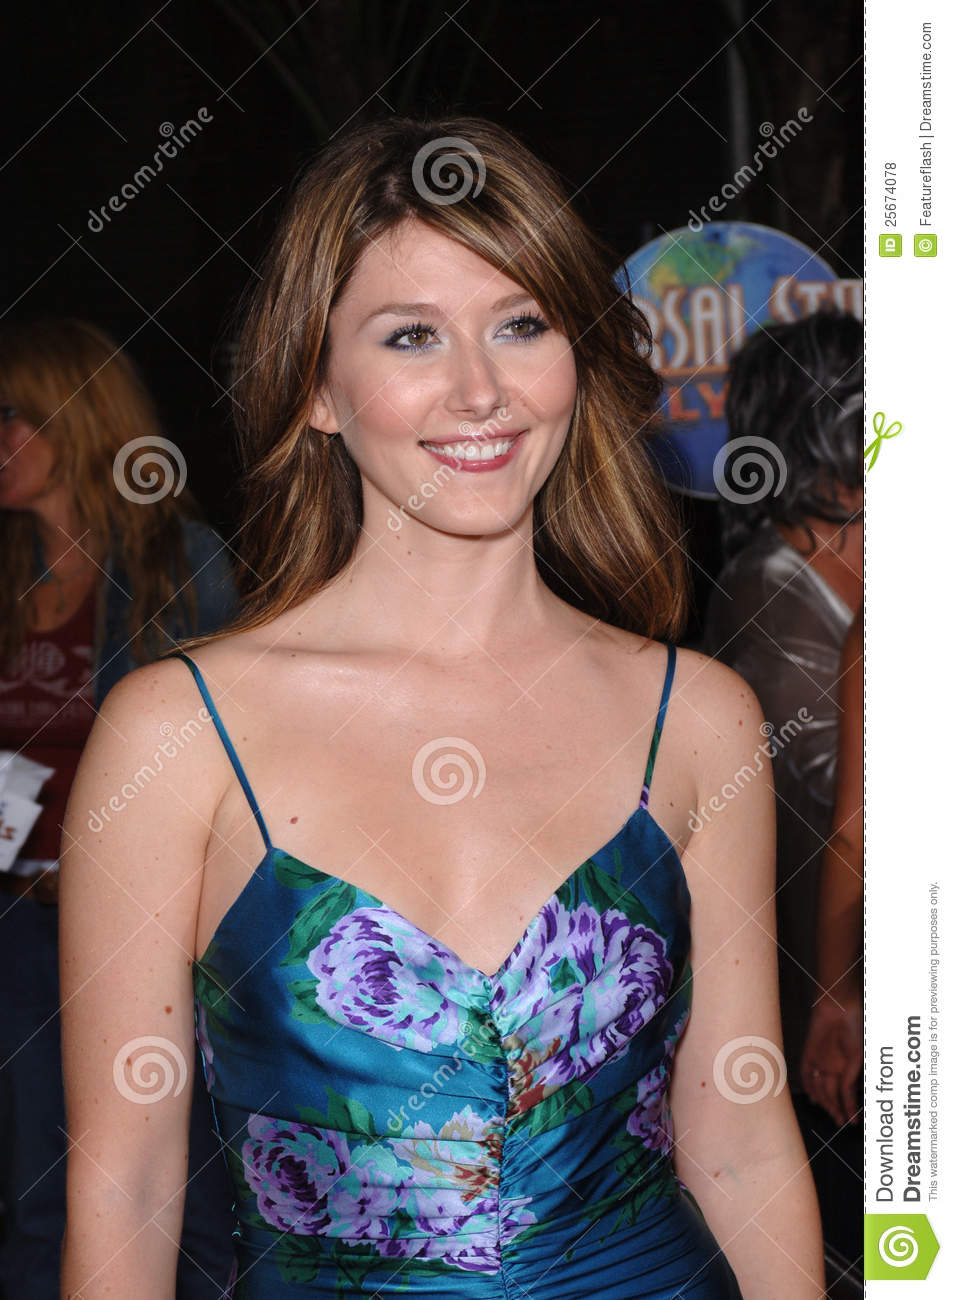 jewel staite 2013jewel staite instagram, jewel staite 2017, jewel staite 2013, jewel staite comic con, jewel staite firefly, jewel staite 2016, jewel staite wiki, jewel staite looks like, jewel staite twitter, jewel staite supernatural, jewel staite westworld, jewel staite reddit, jewel staite, jewel staite imdb, jewel staite 2015, jewel staite stargate atlantis, jewel staite 2014, jewel staite x files, jewel staite legends of tomorrow